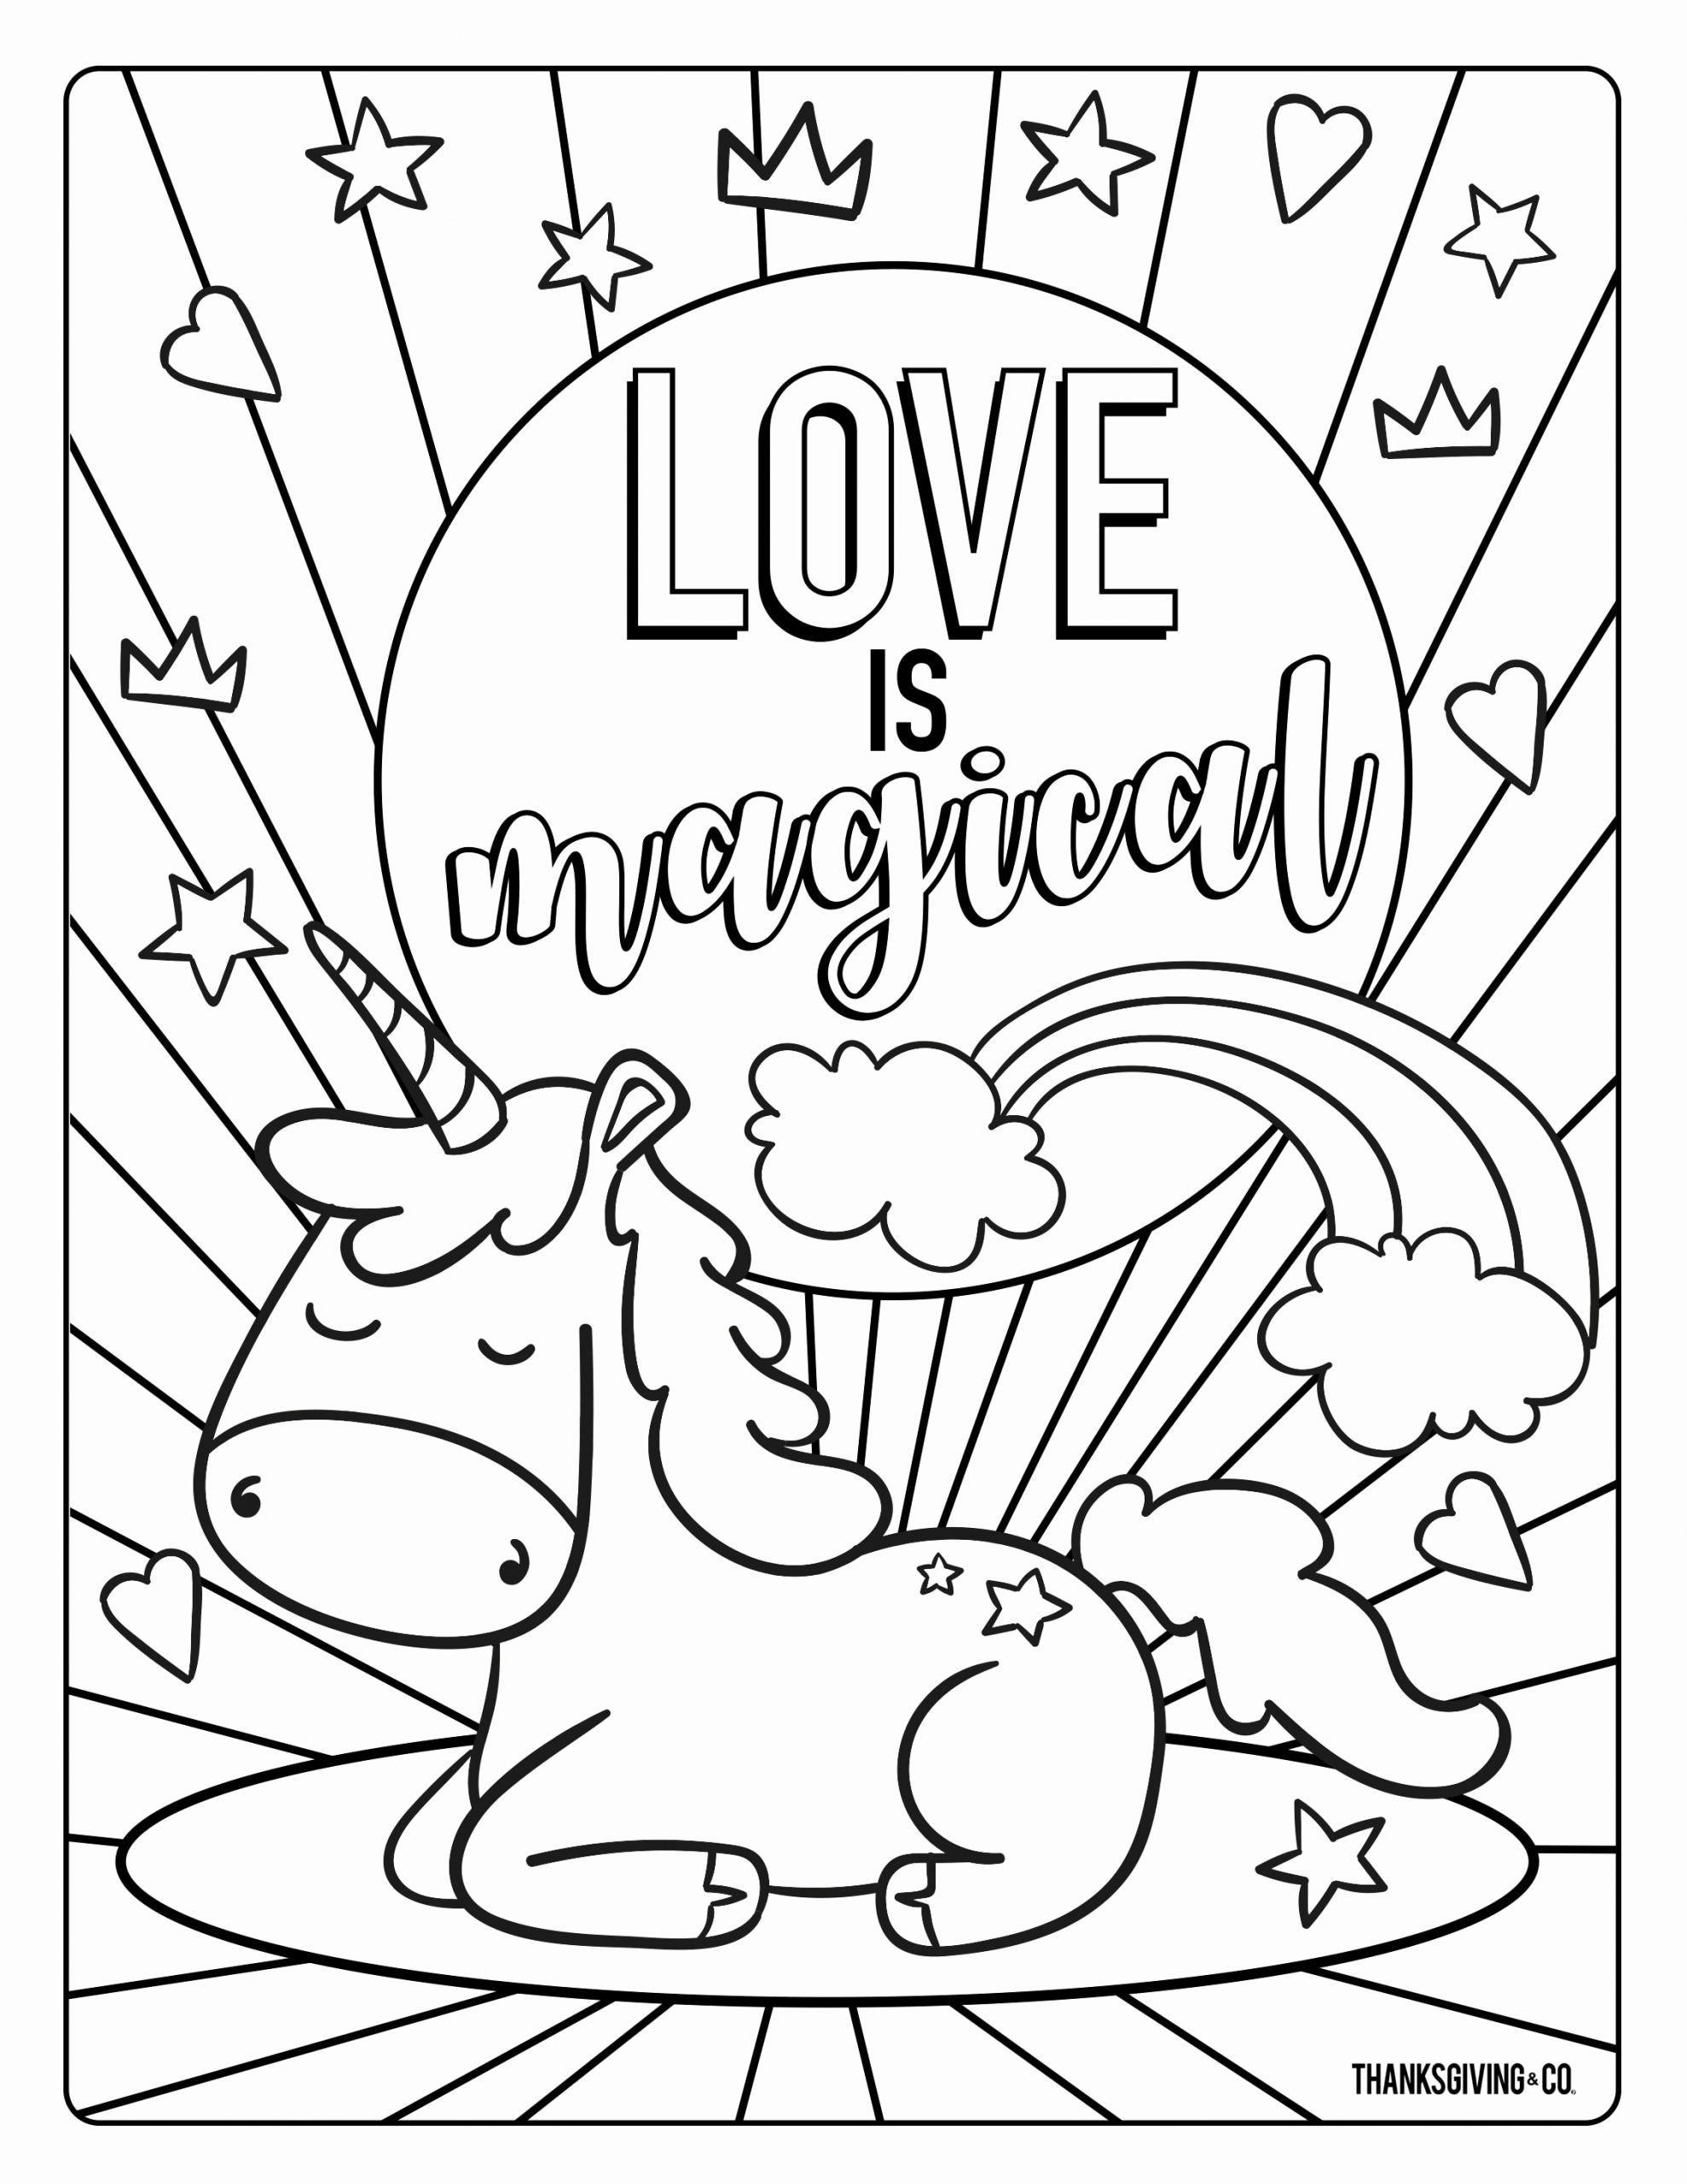 Free Valentine Printables Coloring Pages Worksheets Crayola Coloring Pages Valentines Day Coloring Page Printable Valentines Coloring Pages